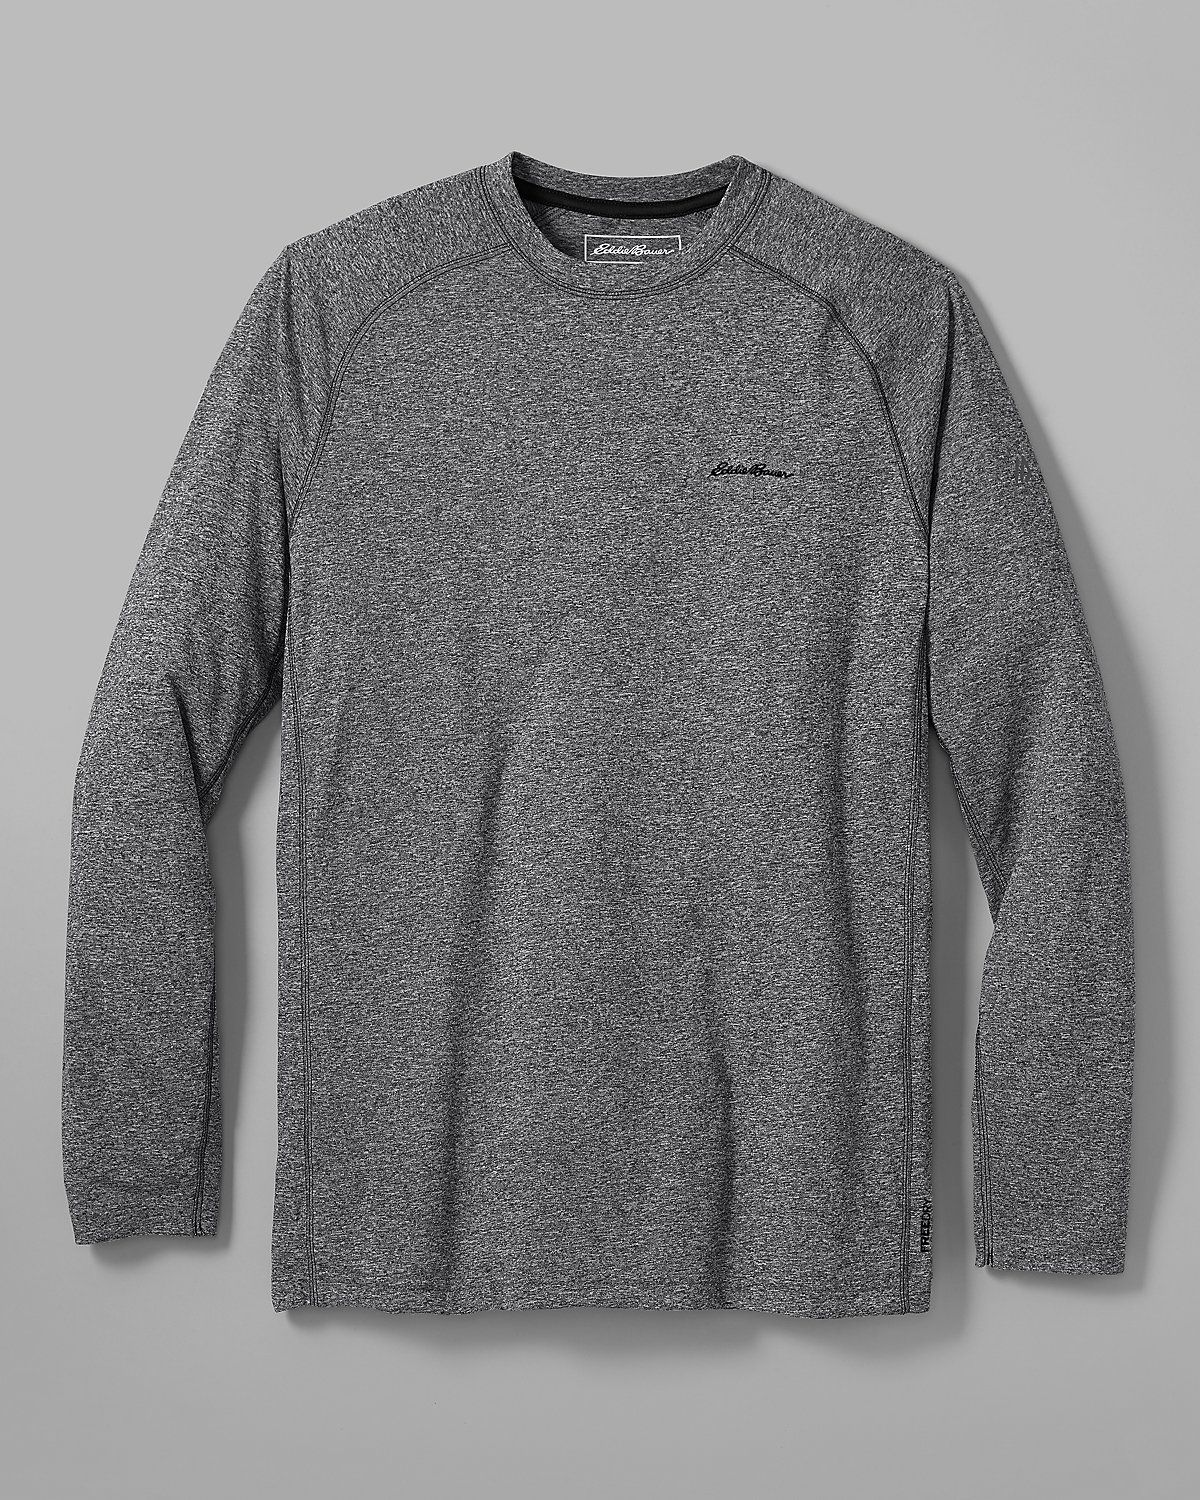 452e7786 Men's Resolution Long-sleeve T-shirt | Eddie Bauer L-Tall in Grey or Black